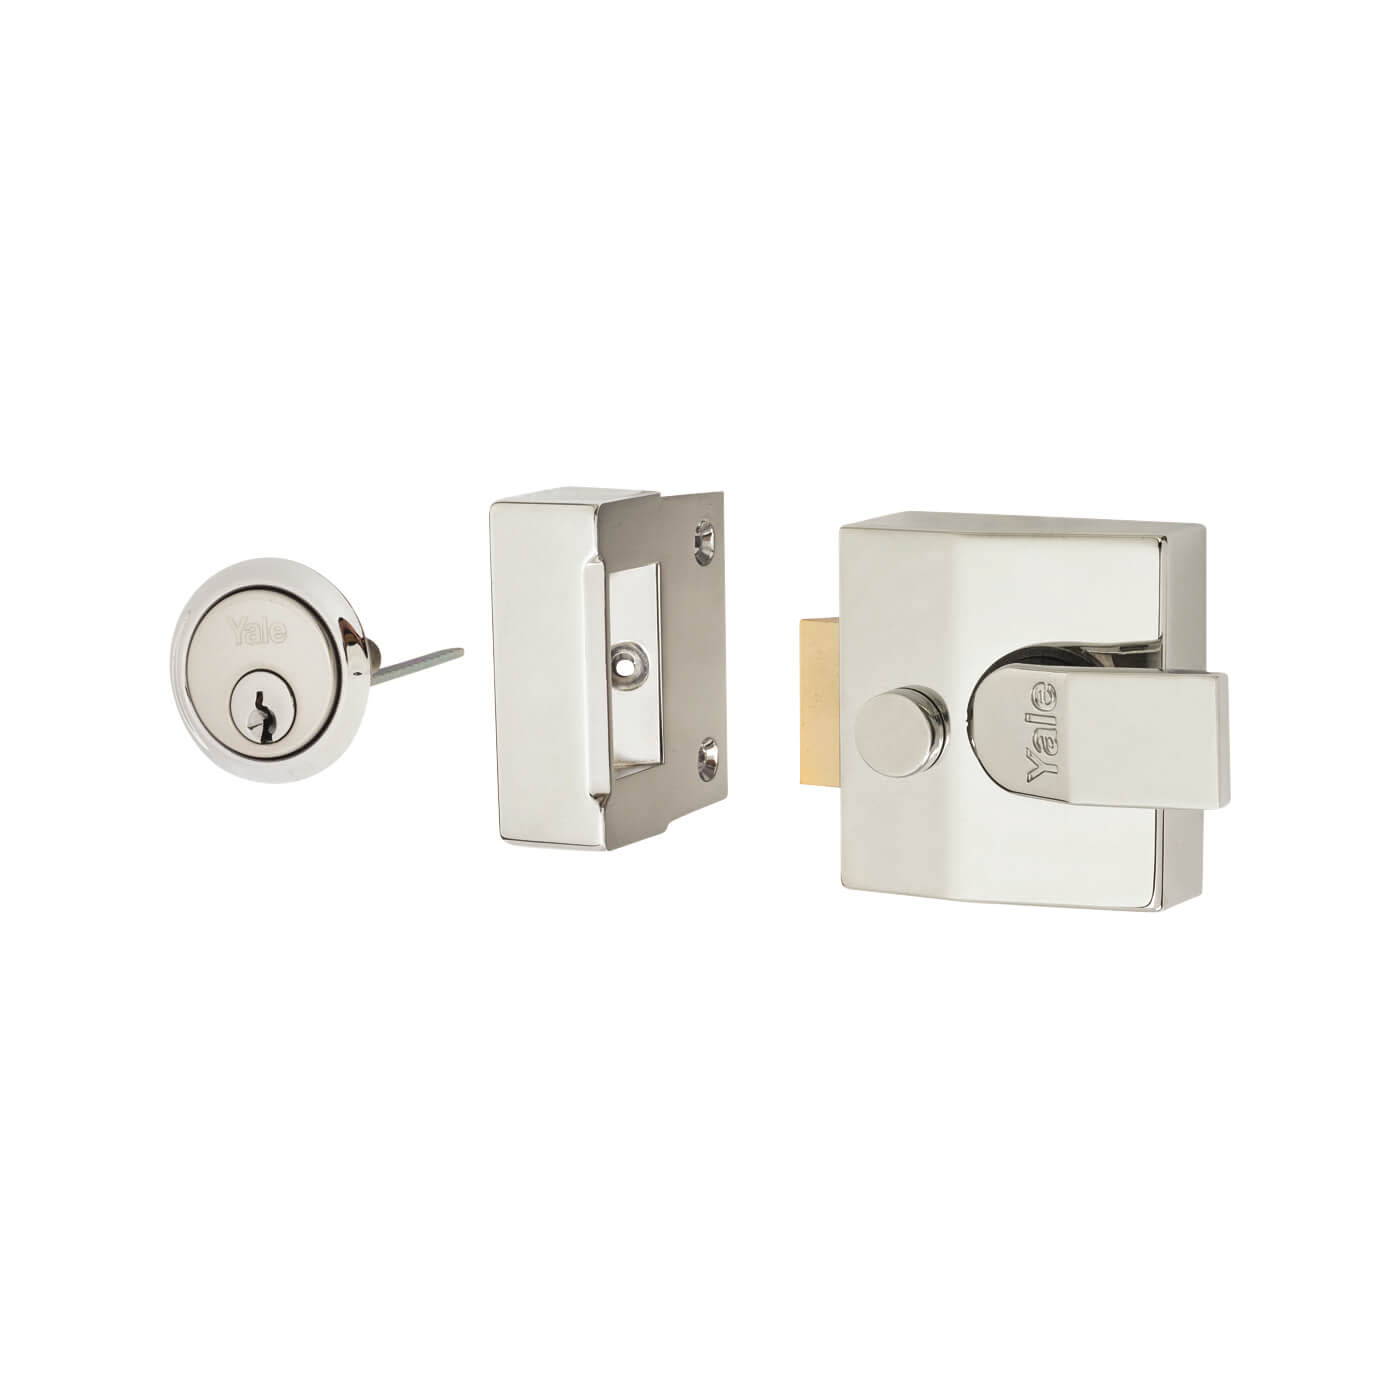 Yale® 85 Double Locking Nightlatch - 40mm Backset - Polished Chrome Case/Cylinder)